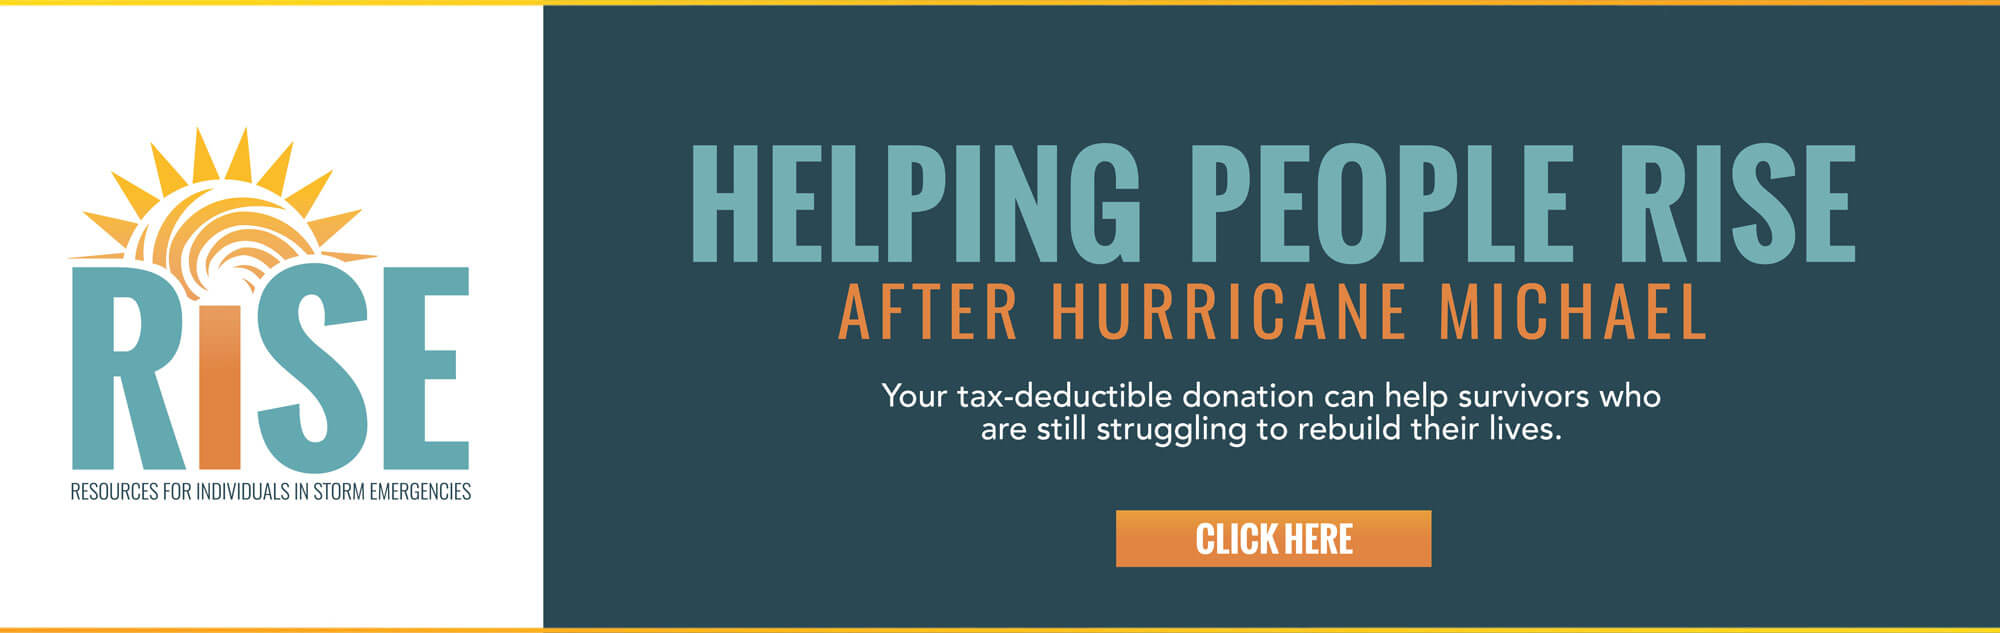 By making a tax-deductible donation to RISE, you'll be providing essential assistance to people affected by Hurricane Michael.